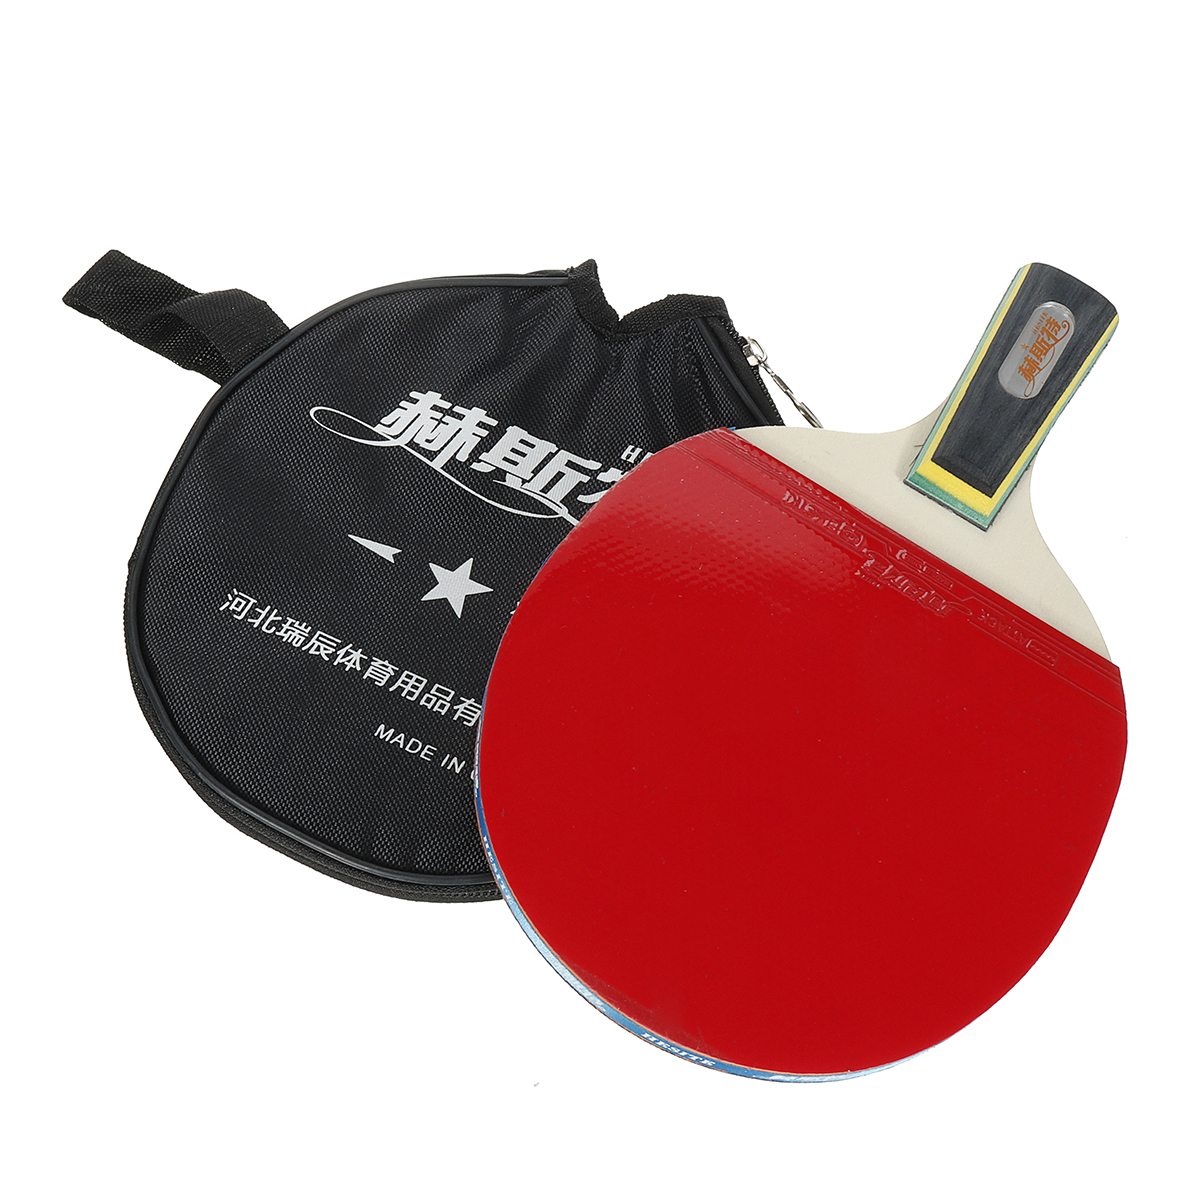 1 Pcs Table Tennis Racket Wood Rubber Professional Ball Paddle W